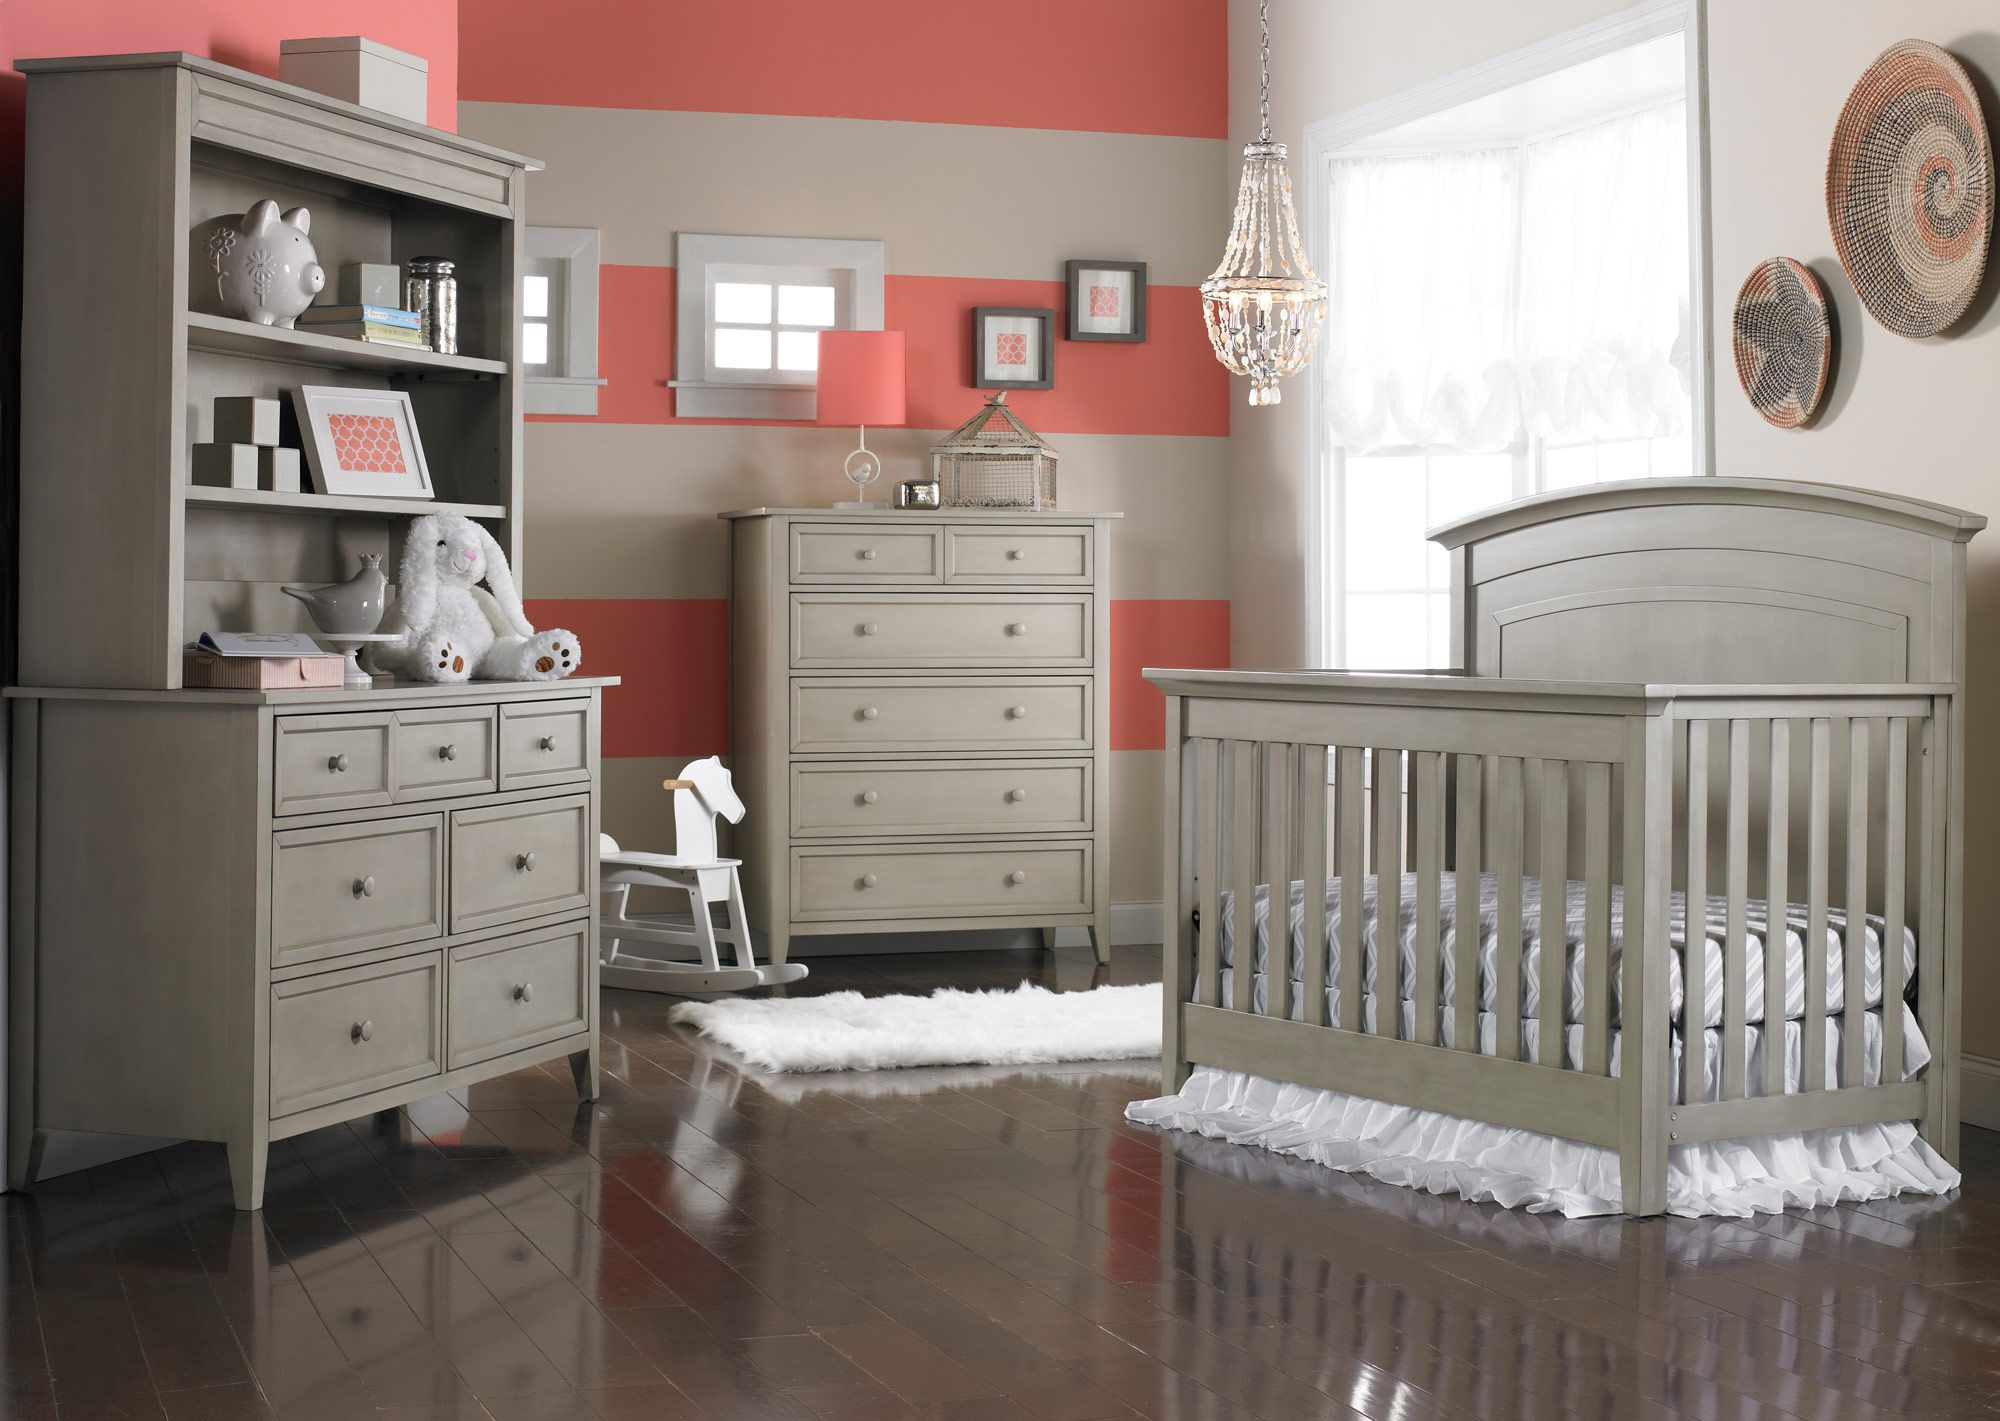 Best Cribs Cardi S Furniture Cardiscribs Baby Infant 400 x 300